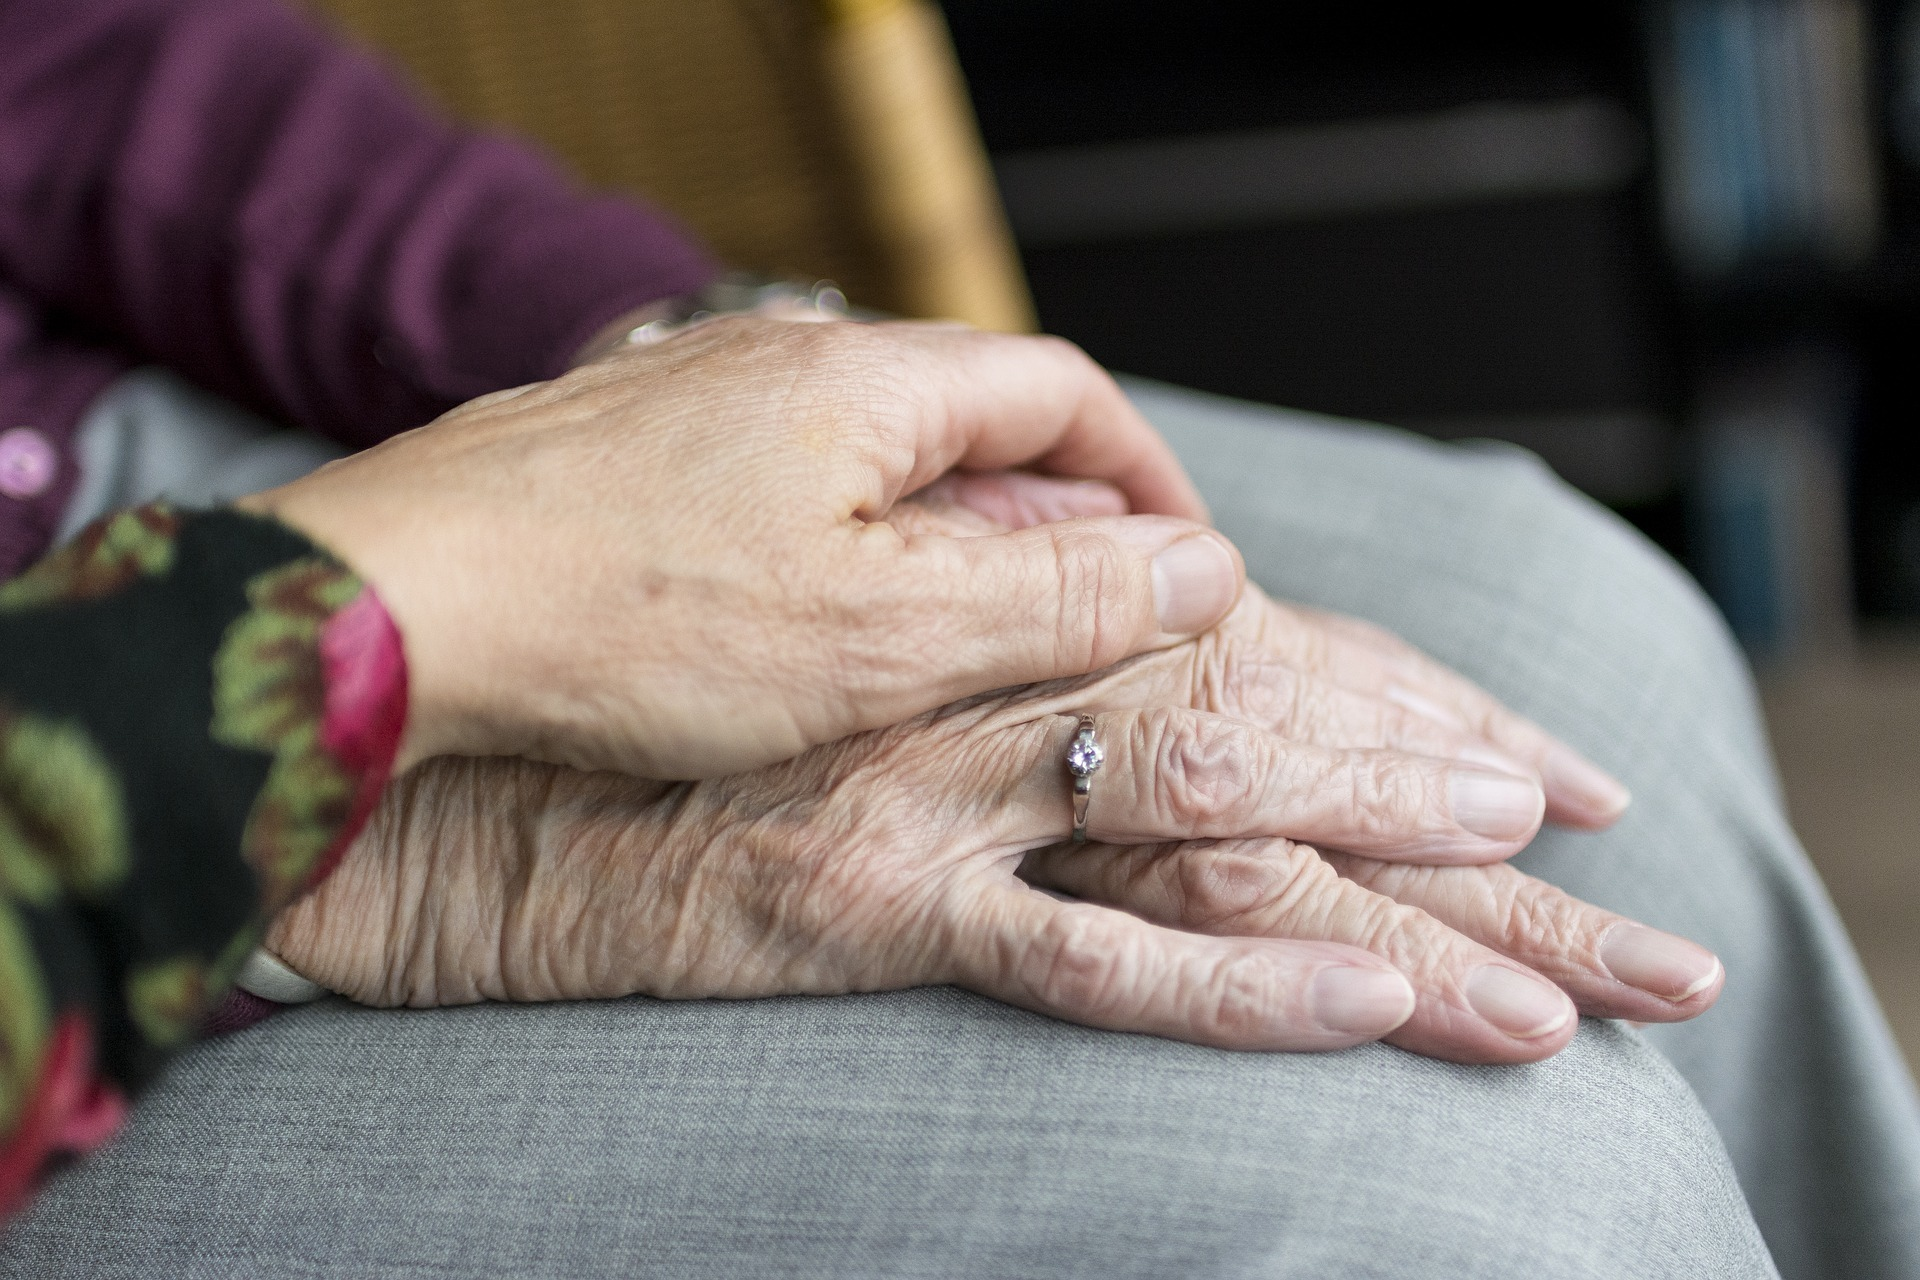 Hertfordshire County Council wants to merge the contracts for two types of care at home